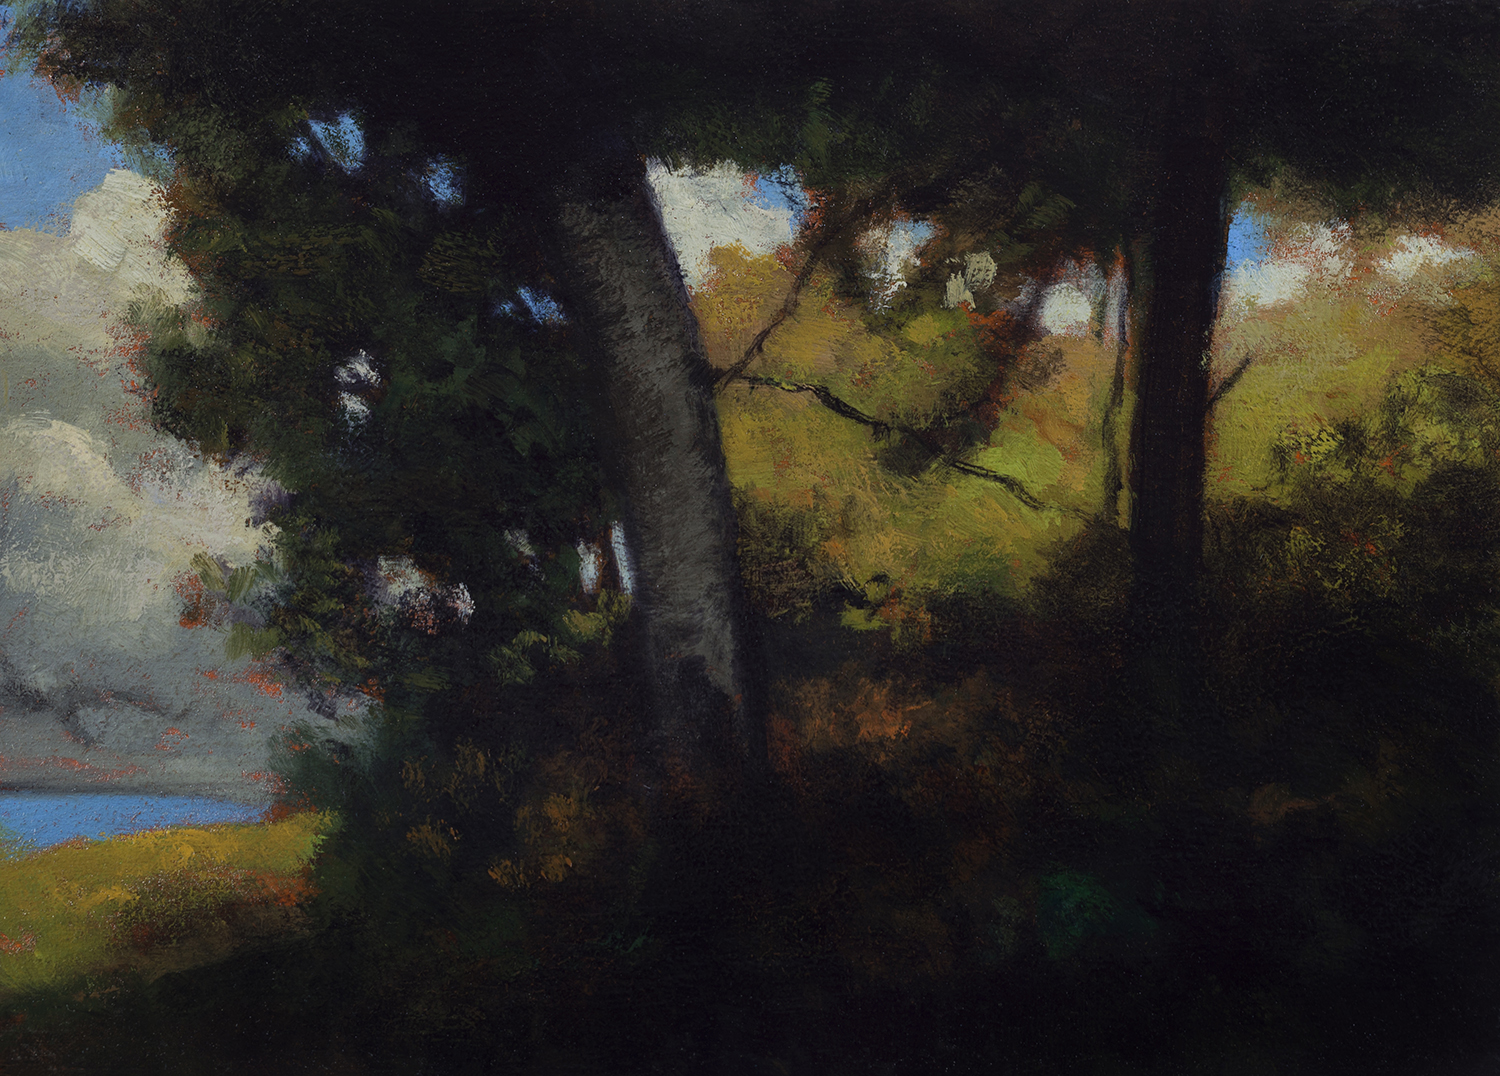 Study after: Robert Minor - Landscape by M Francis McCarthy - 5x7 Oil on Wood Panel